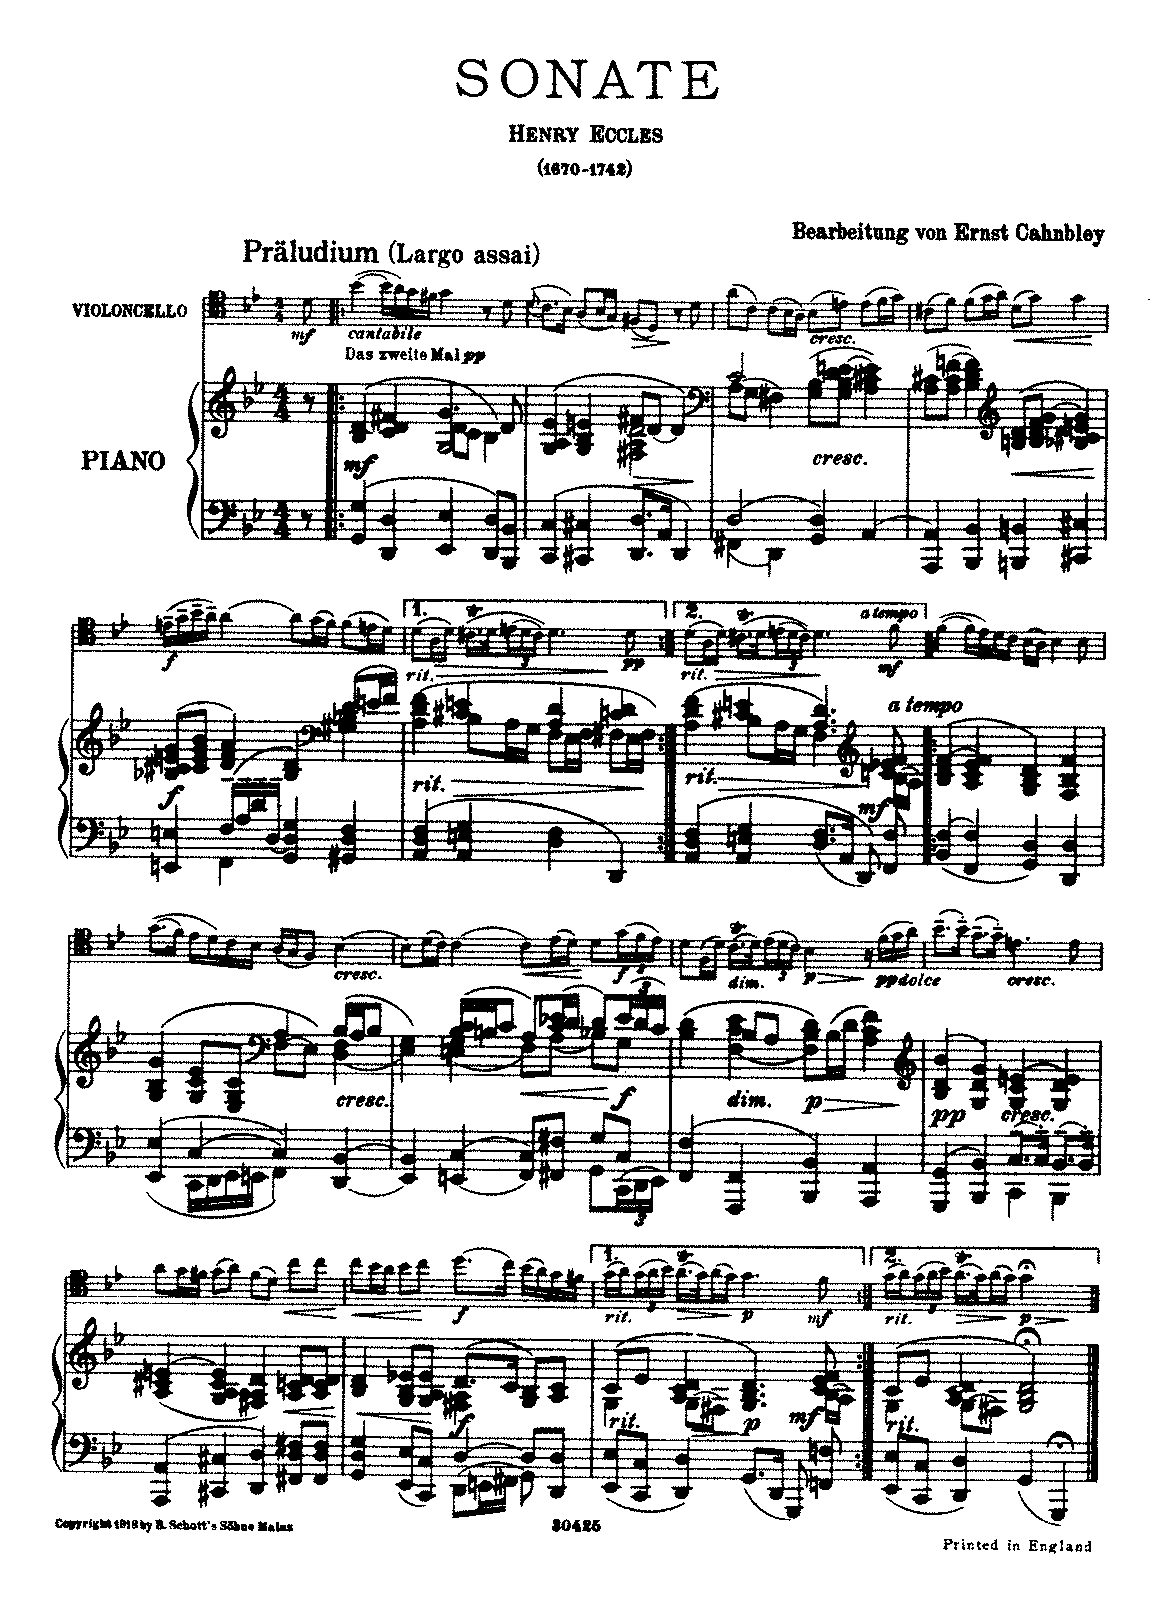 PMLP54156-Eccles - Cello Sonata (Cahnbley) for cello and piano parts.pdf